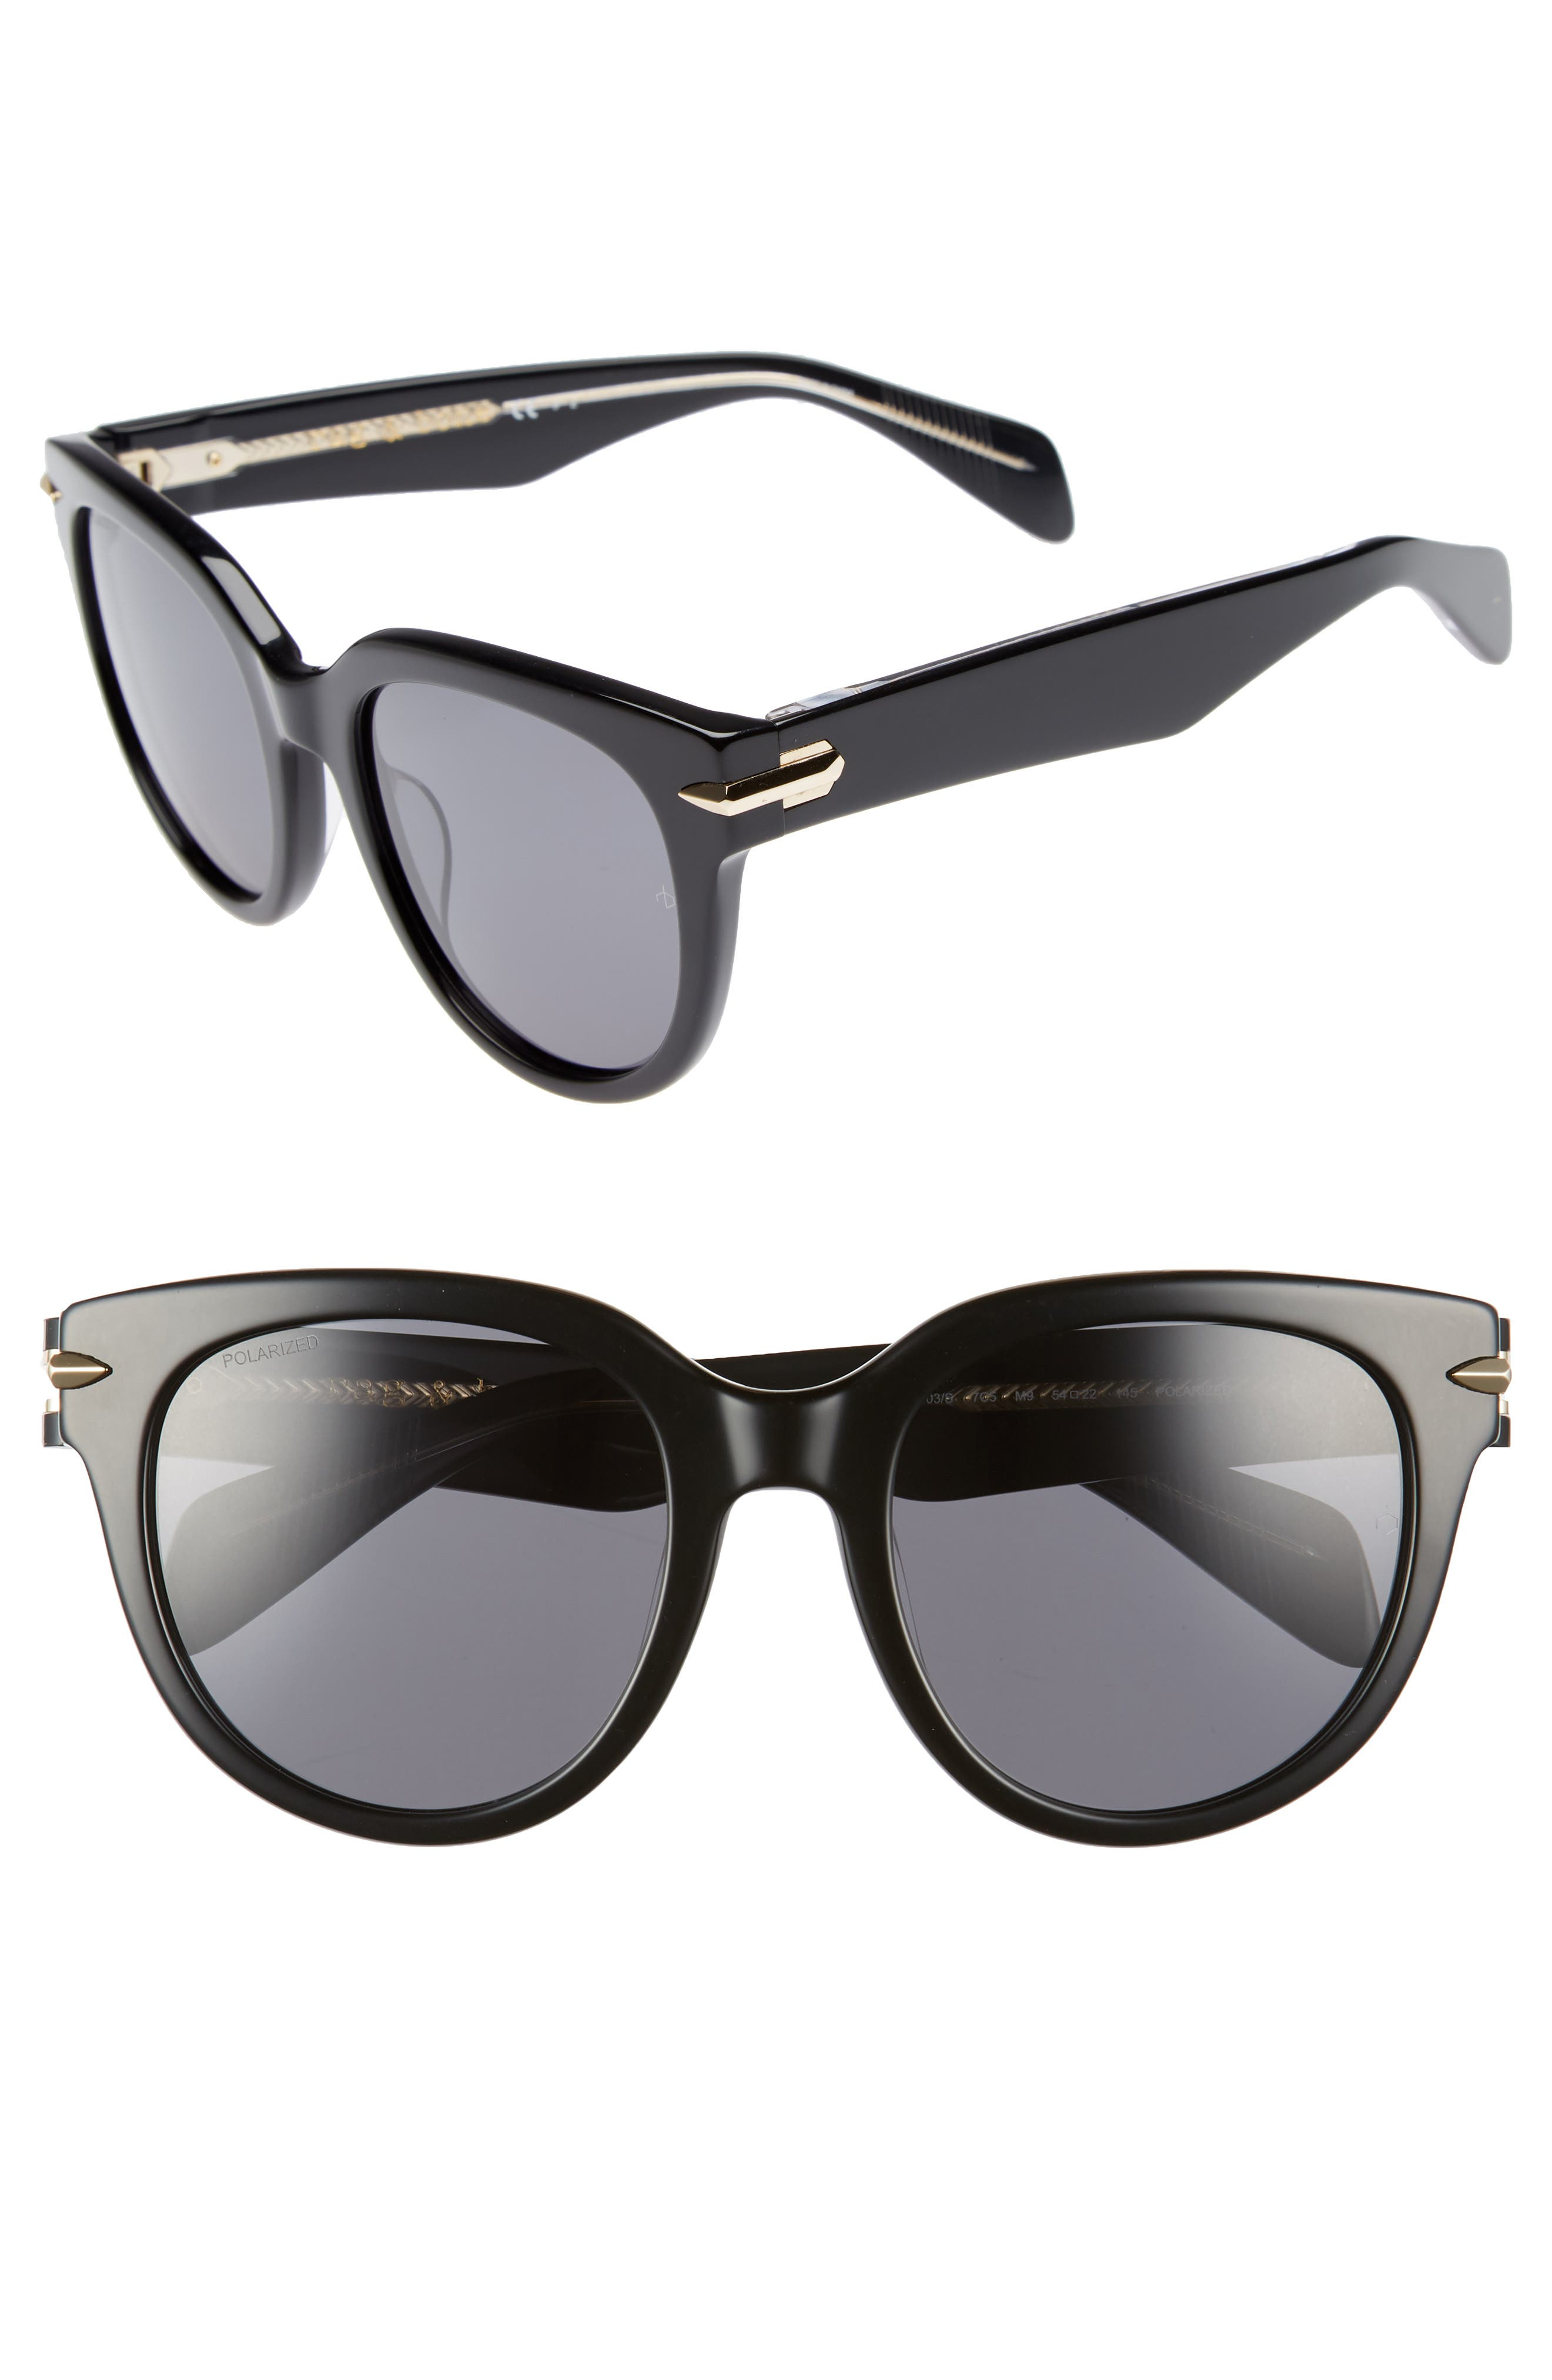 54mm Round Sunglasses,                         Main,                         color, BLACK/ CRYSTAL